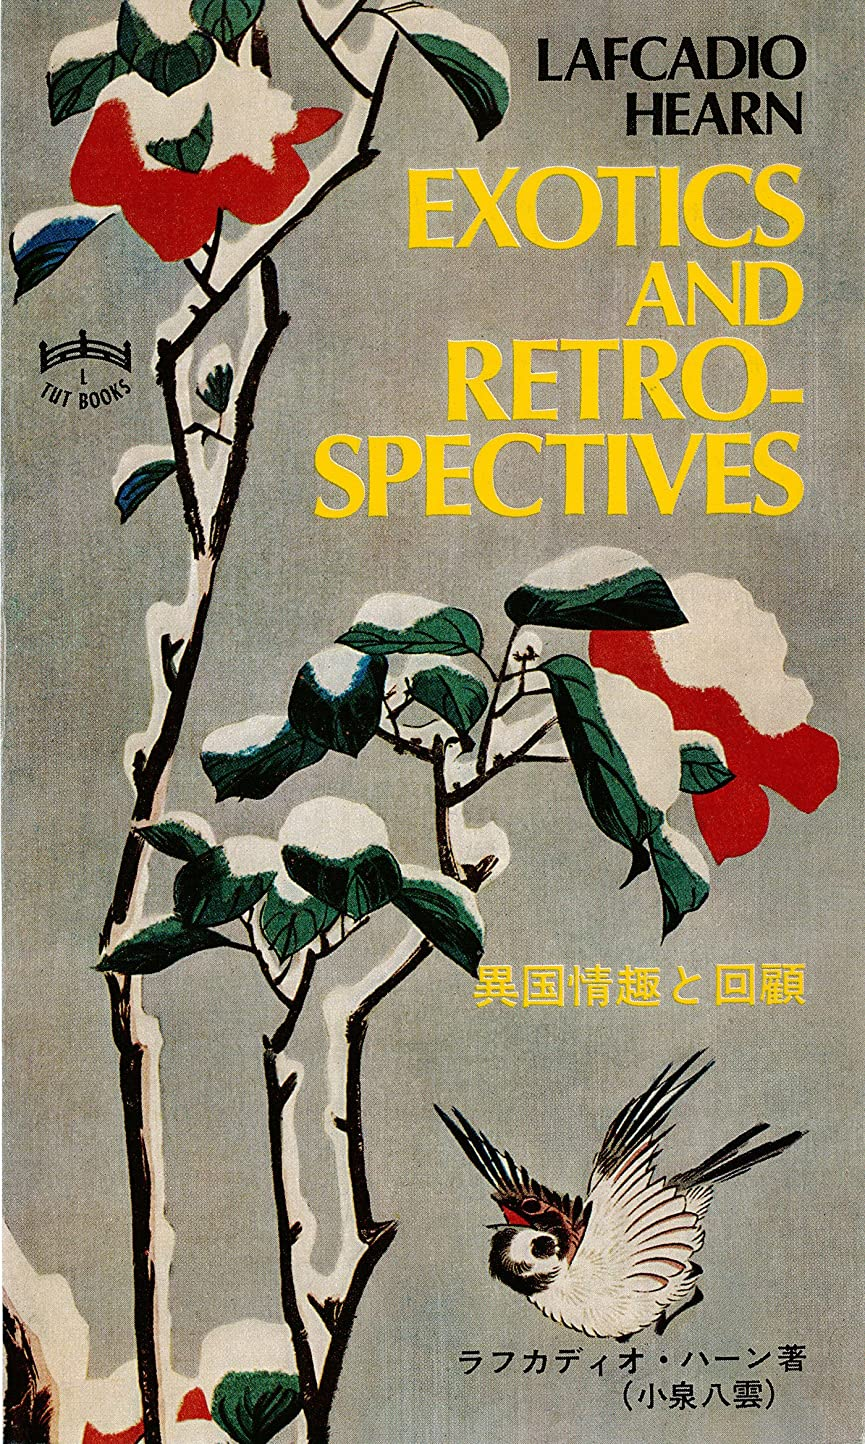 スクランブルわがまま枯れるExotics and Retrospectives (English Edition)